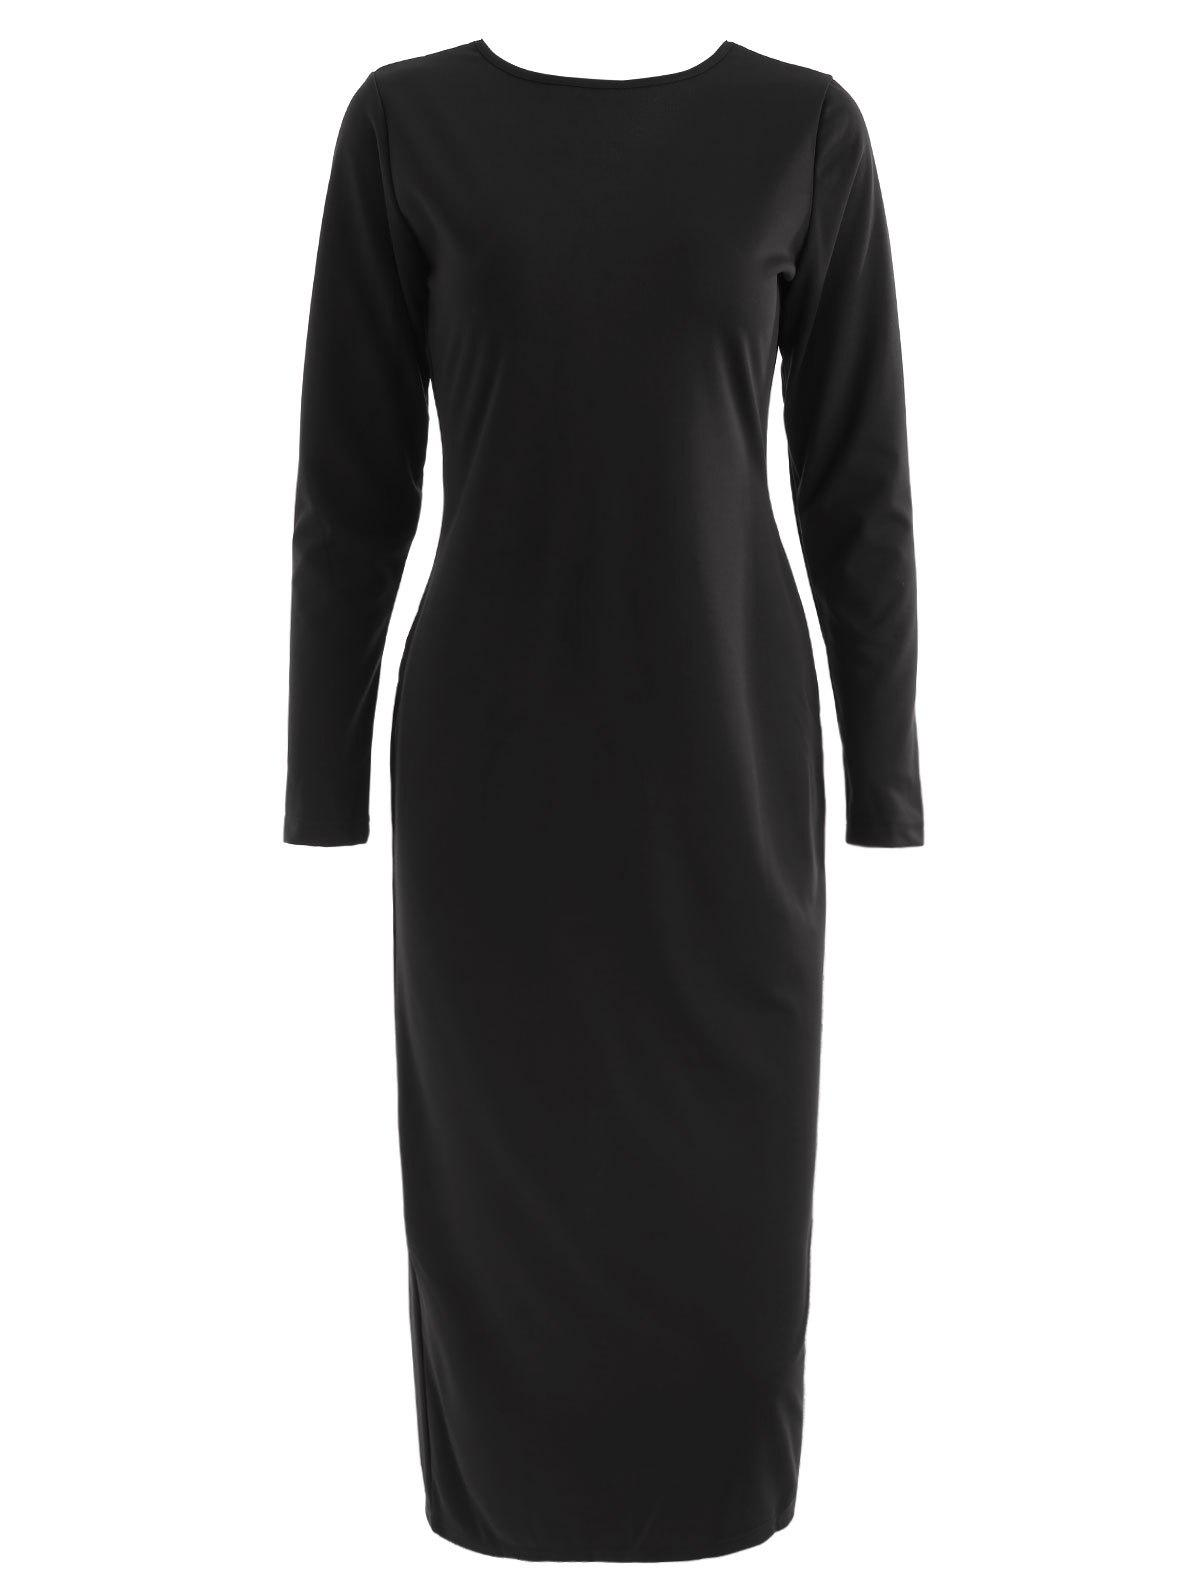 Full Sleeve Zipper Back Bodycon Dress, Black